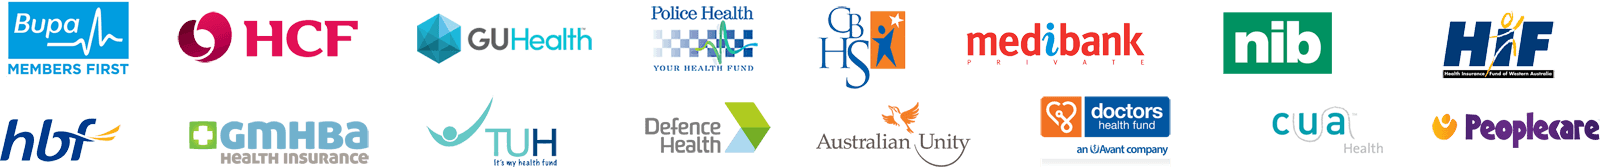 Mayfield Dental Care Health Funds Logos